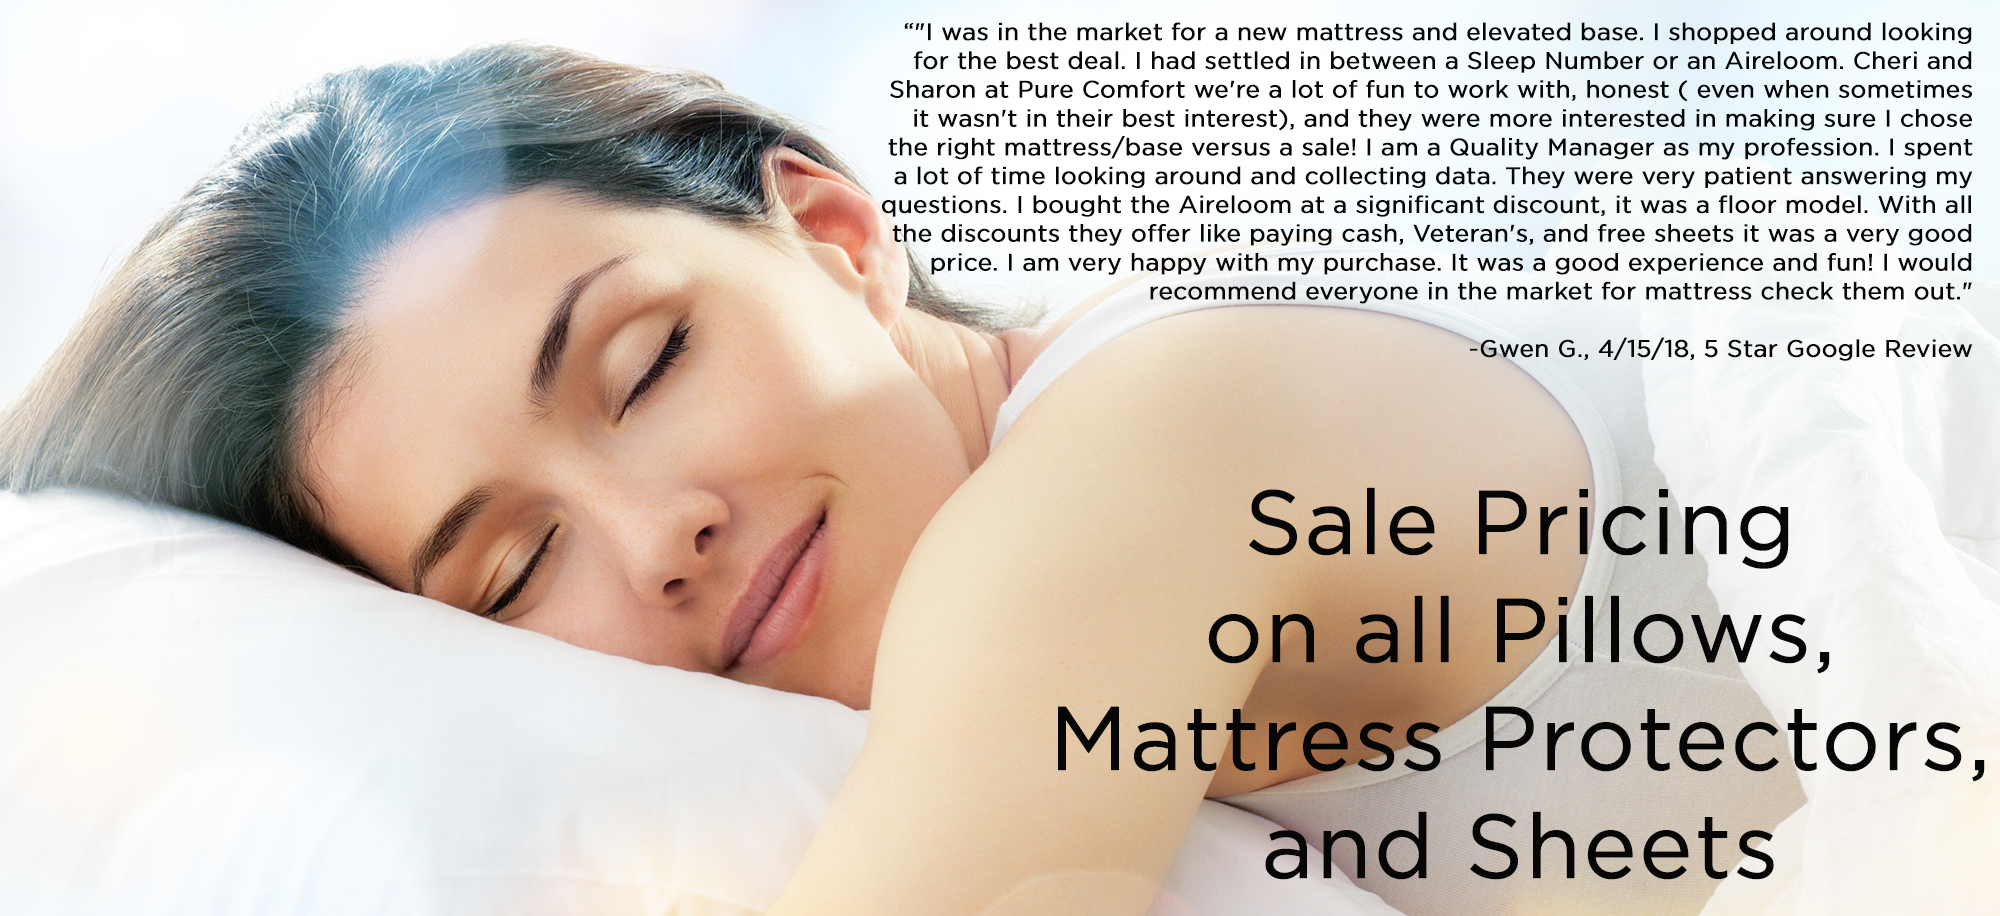 Sale on Mattresses, pillows, mattress protectors, bed sheets